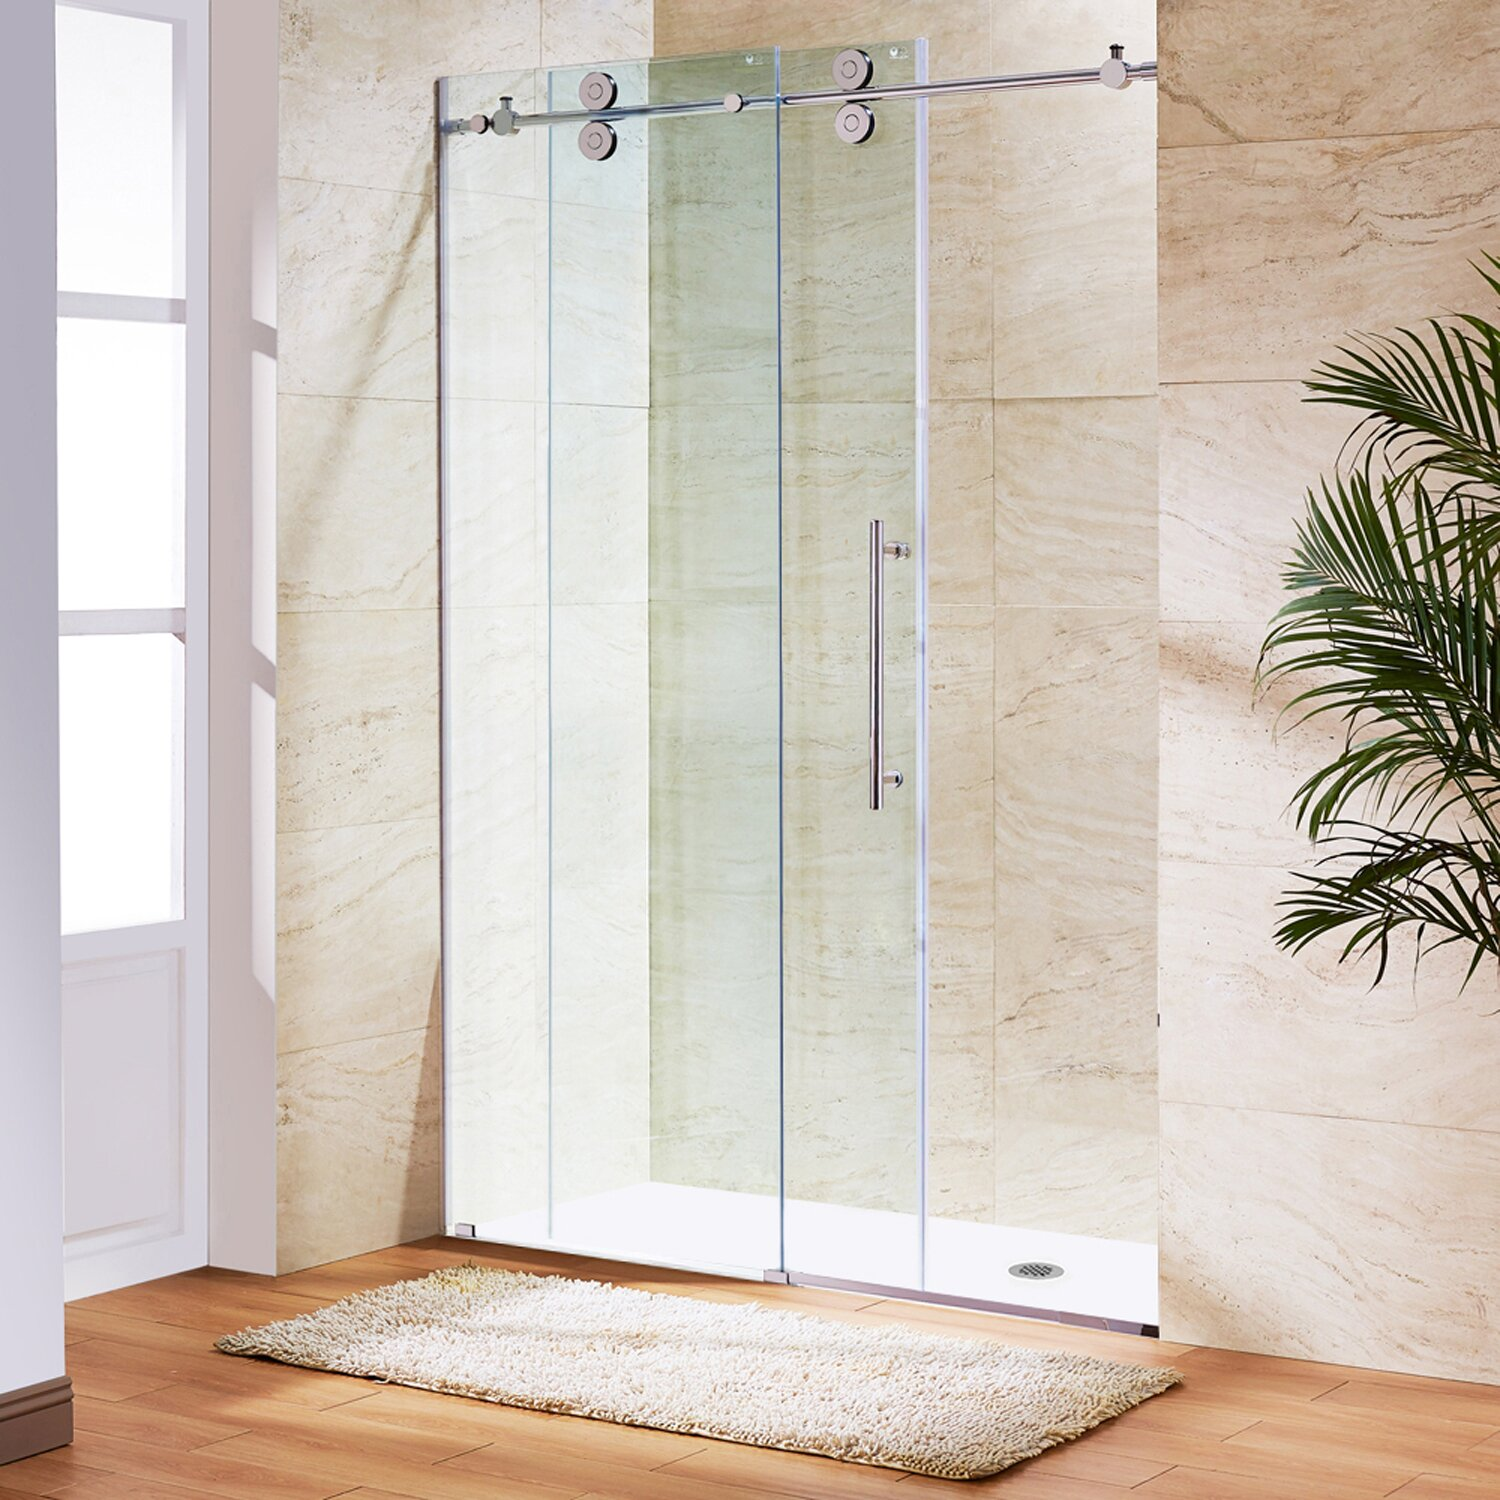 15004755194901001500 56 To 60 In. Frameless Sliding Shower Door With .375  In. Clear